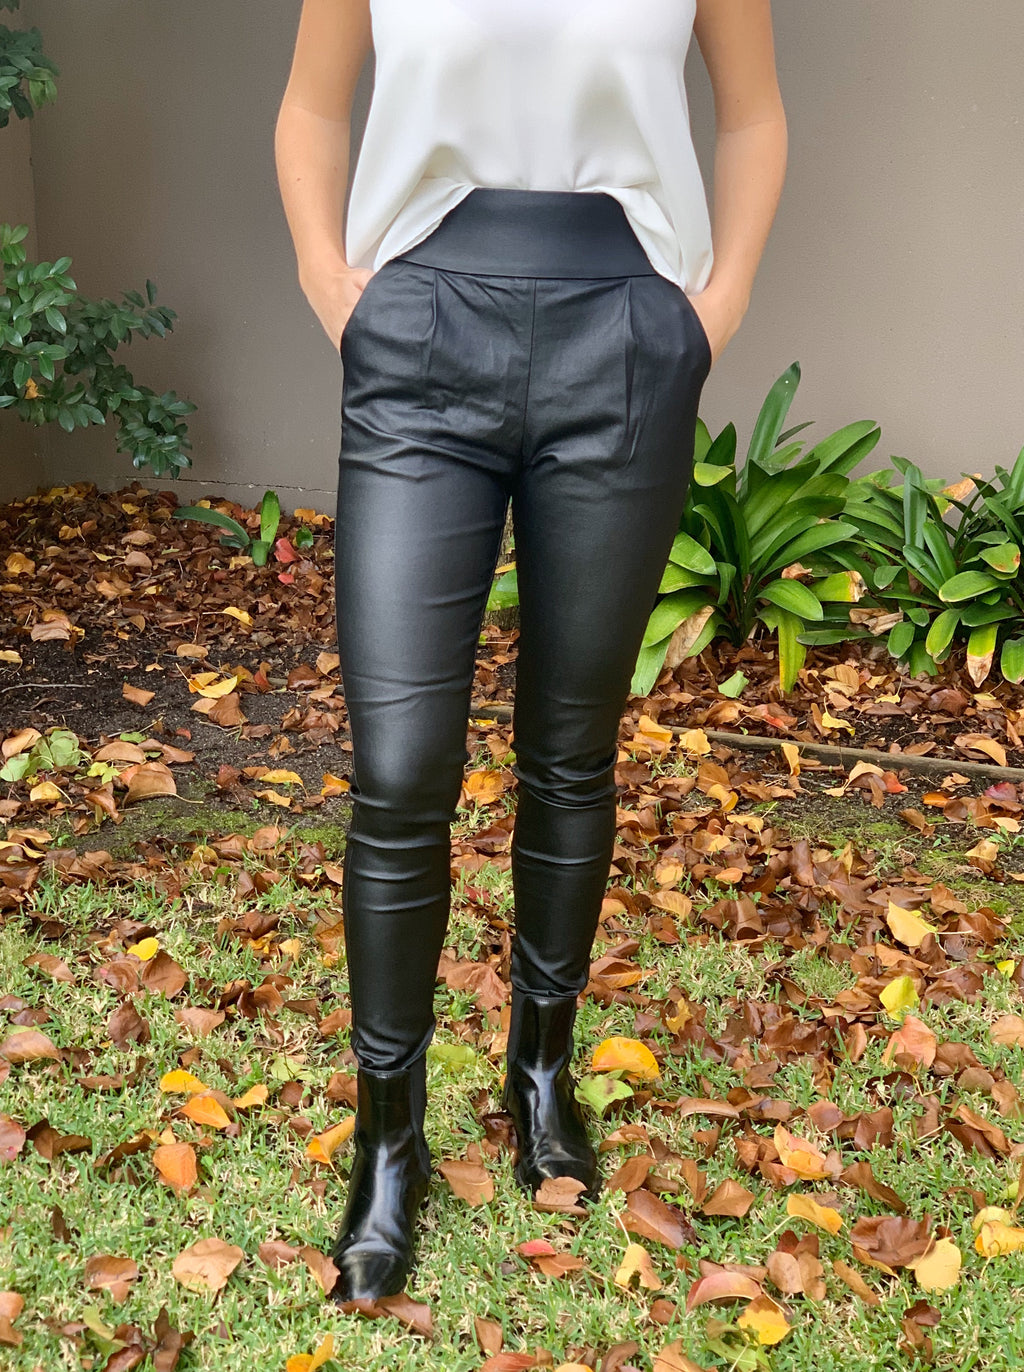 Slim lined coated pants with pockets.